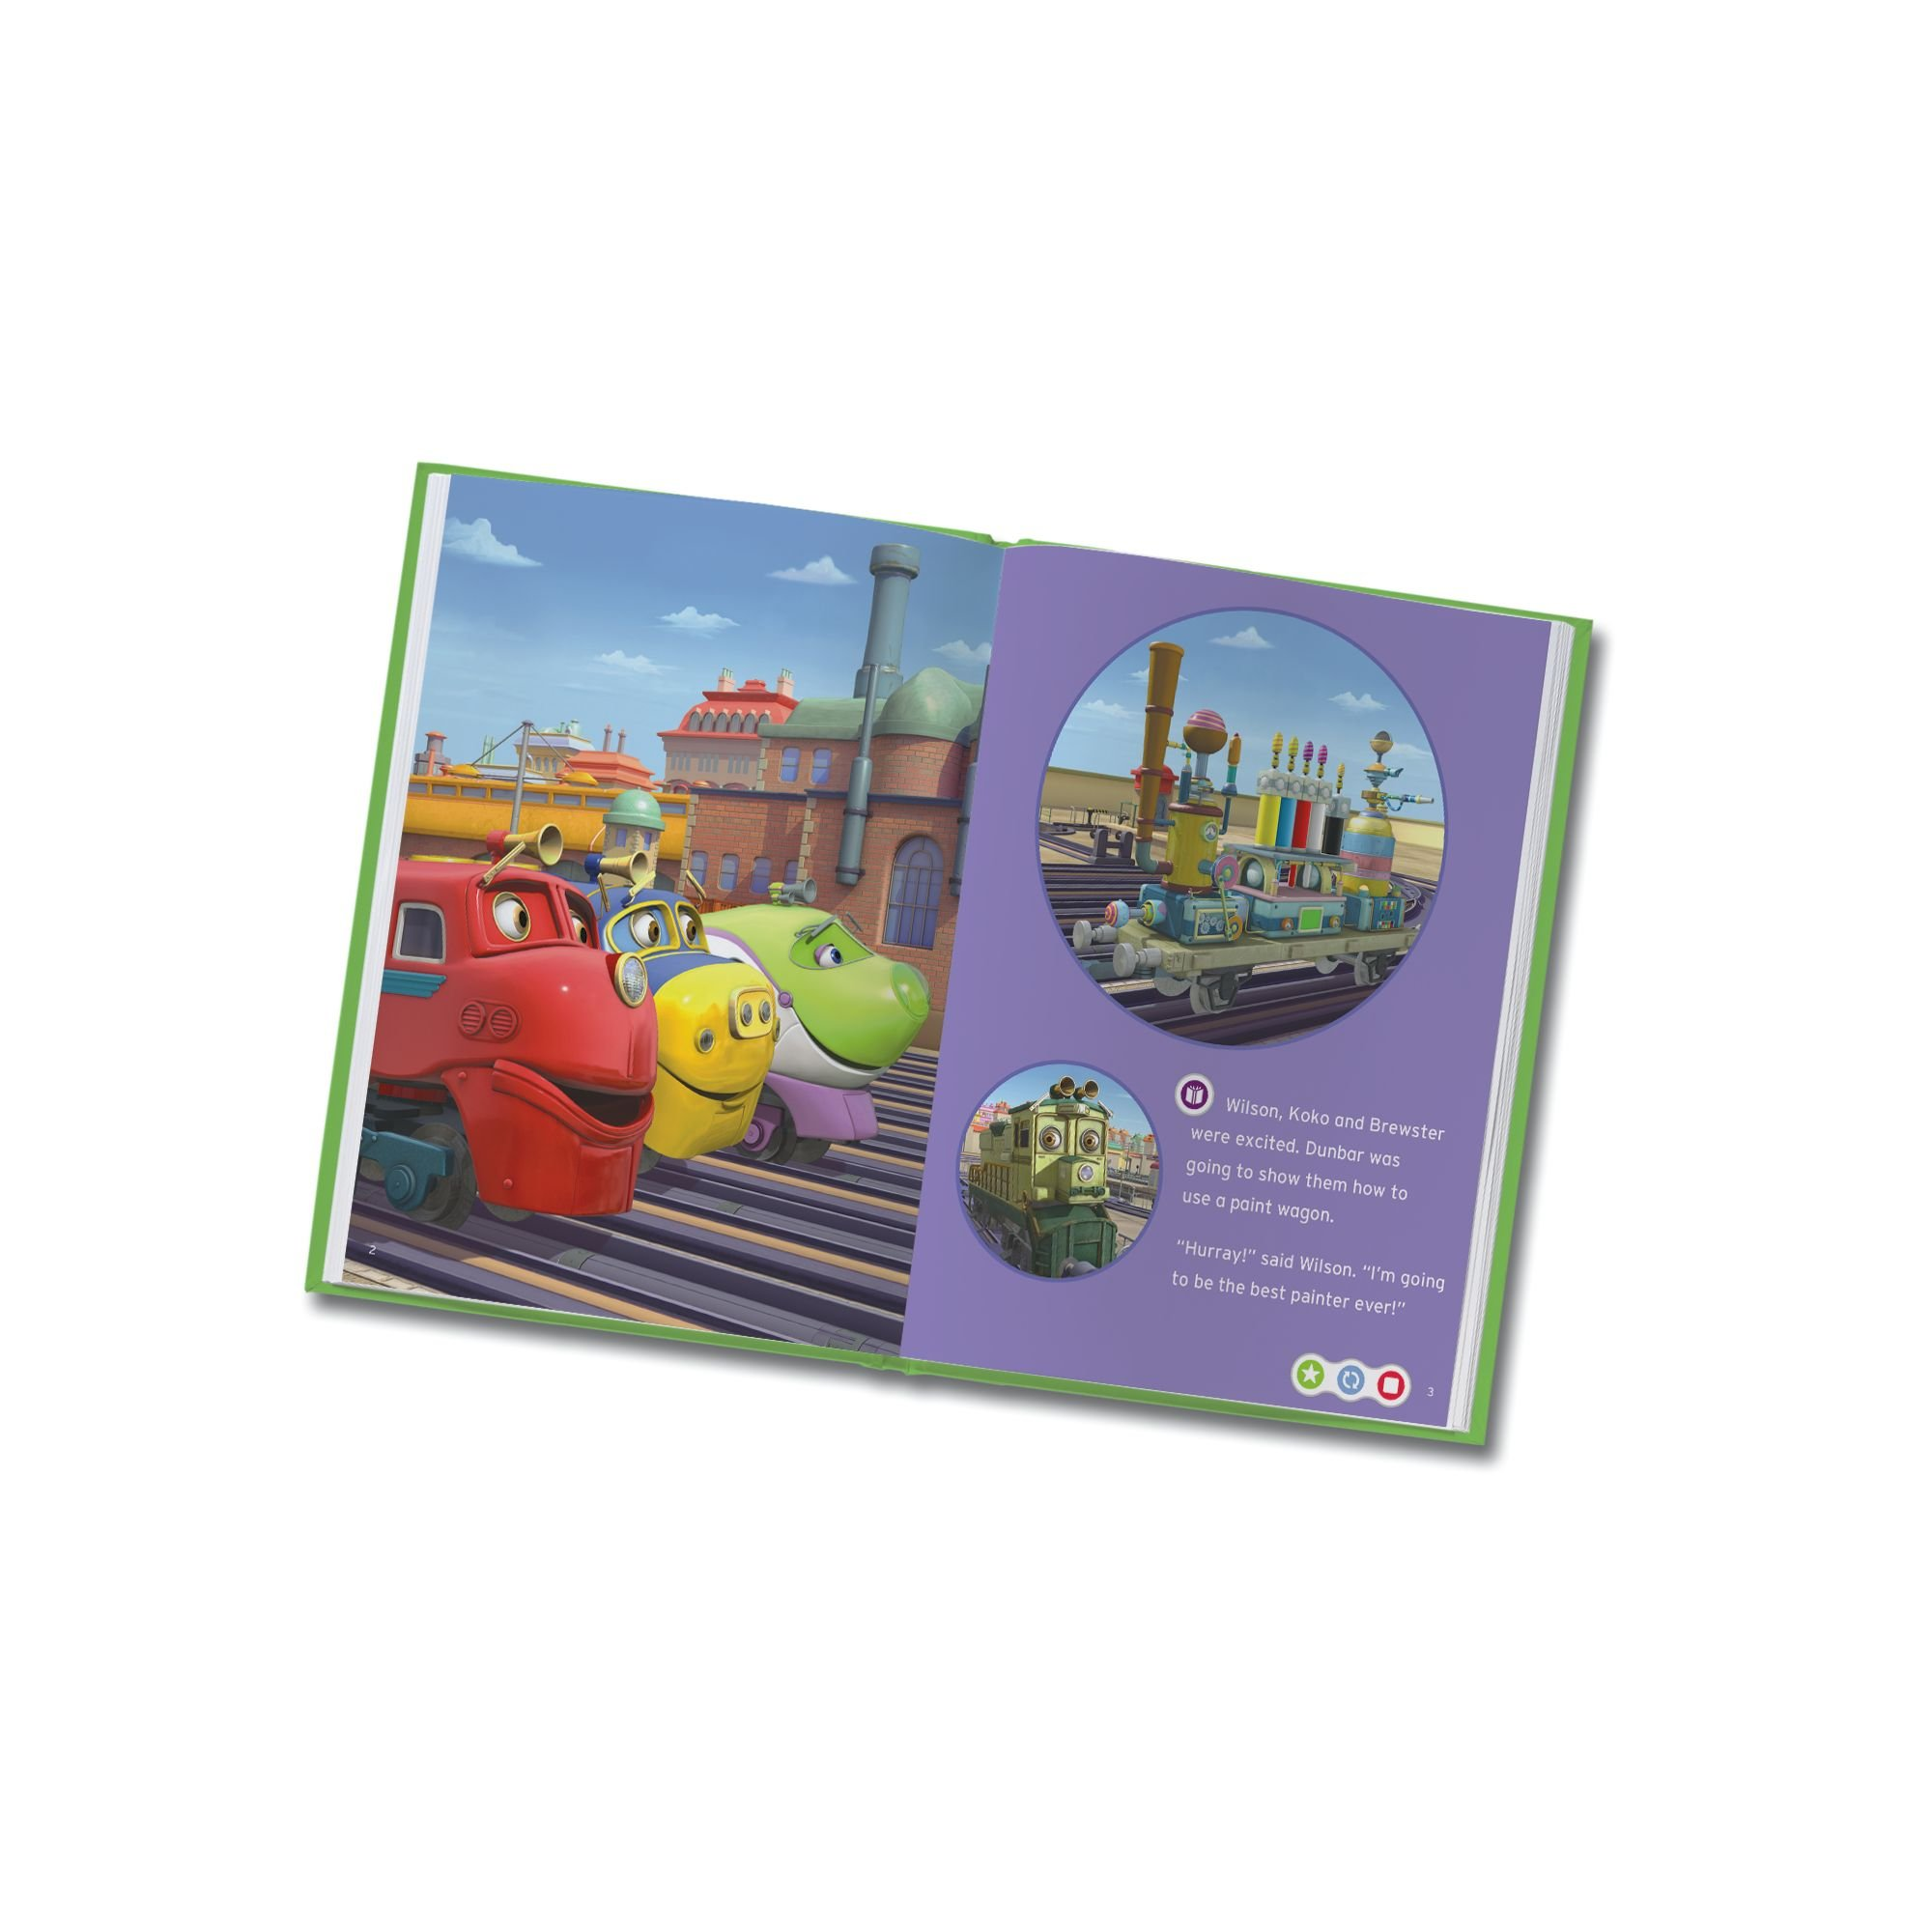 LeapFrog LeapReader Book: Chuggington: Wilson and the Paint Wagon (works with Tag) by LeapFrog (Image #6)